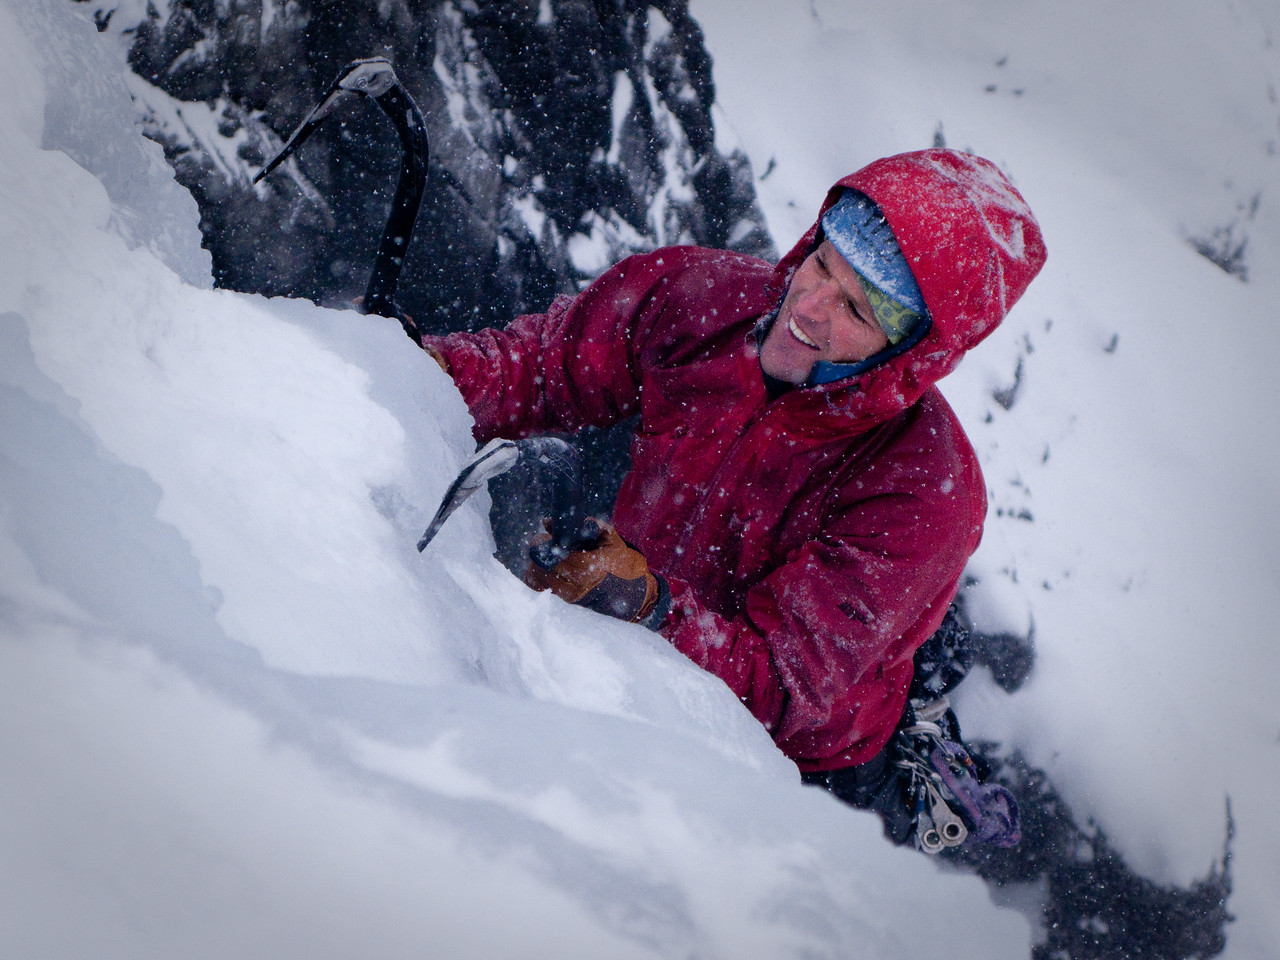 Simon Meis topping out on Nemesis/Stanley Headwall